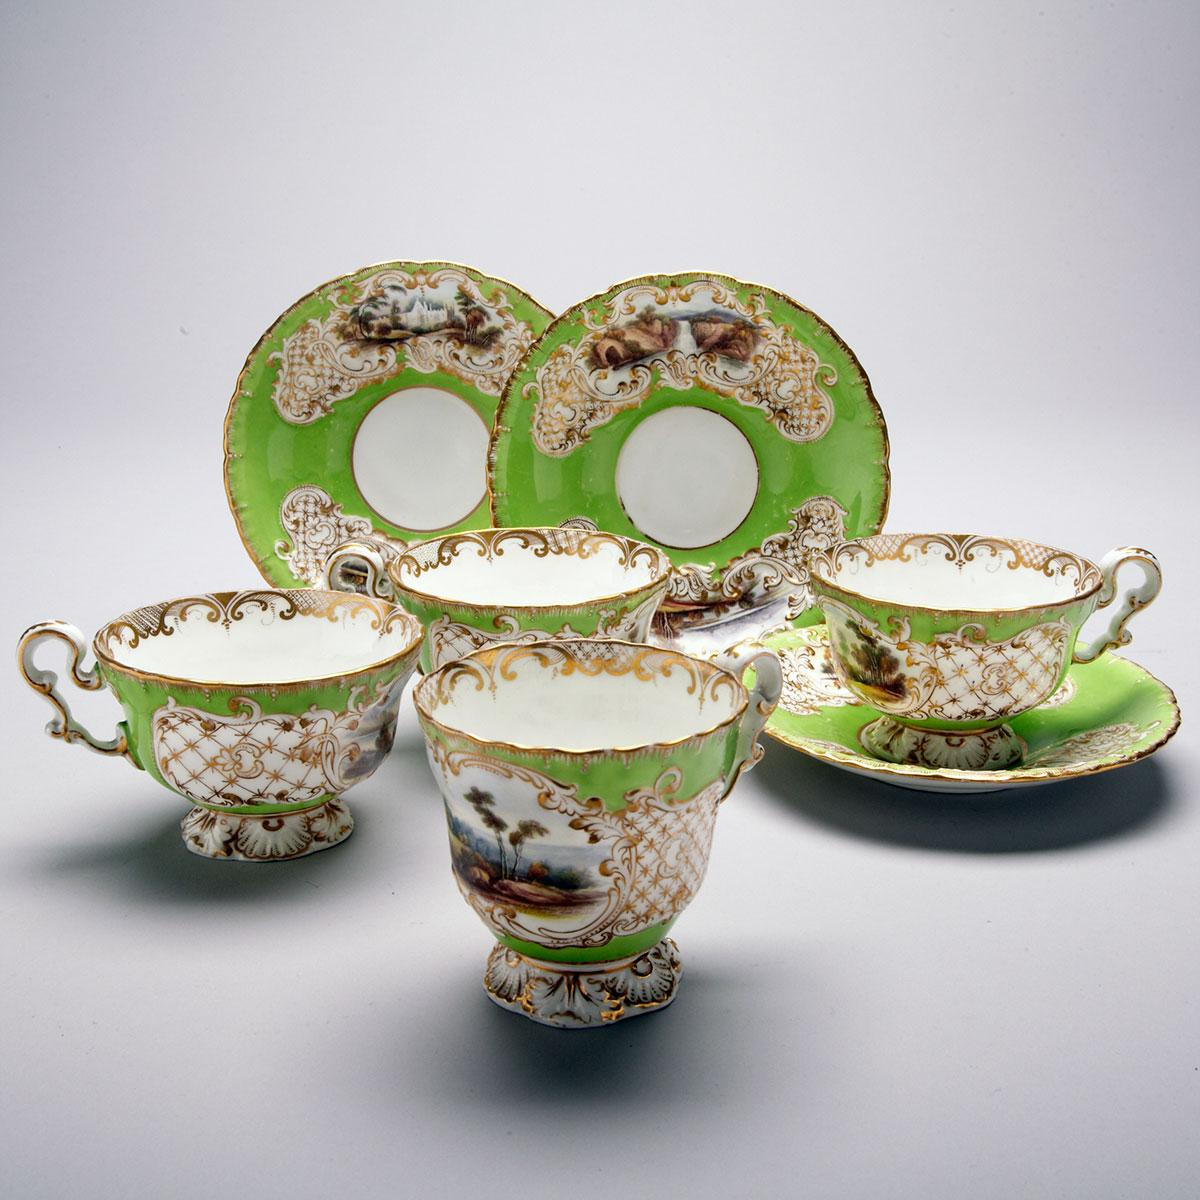 Two Copeland & Garrett Apple Green Ground Topographical Cups and Saucers and a Trio, c.1840